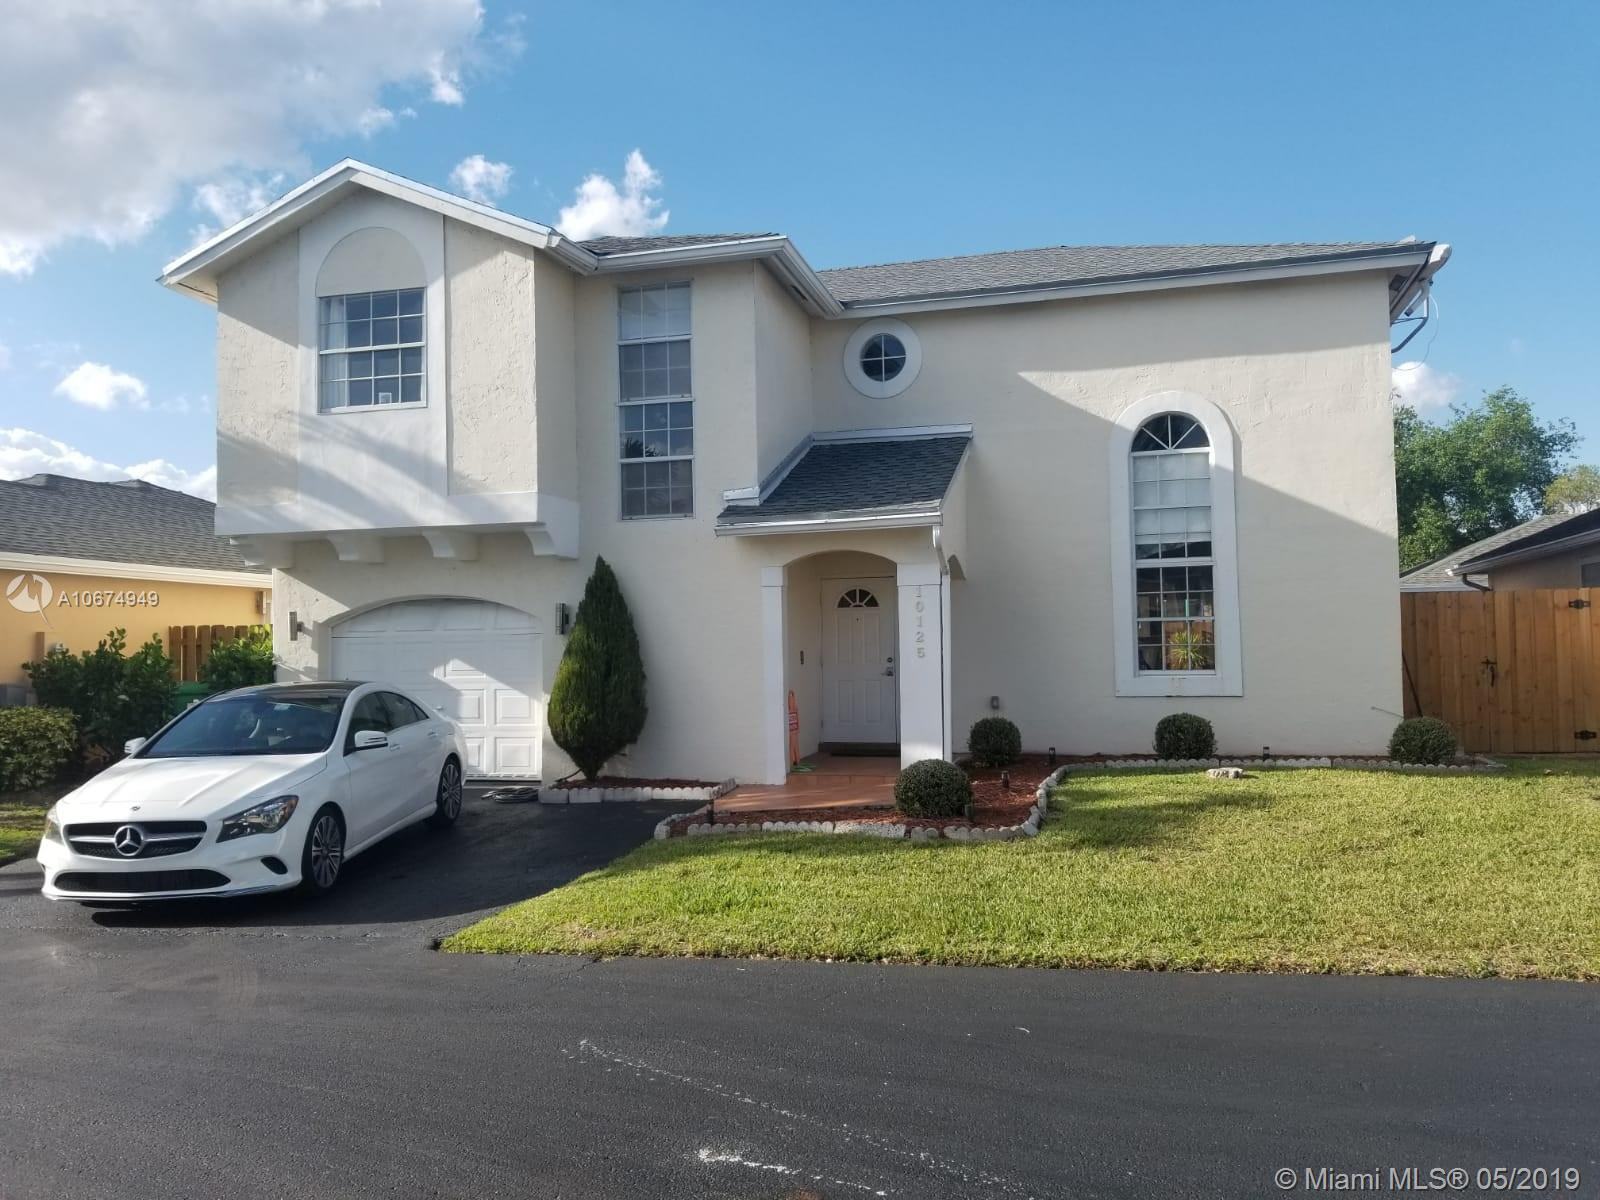 """BEAUTIFUL 2 STORY HOMES IN DORAL PINES,LOCATED WITHIN THE PRESTIGIOUS DORAL PARK COMMUNITY WHICH OFFERS MANY AMENITIES,INCLUDING POOL,OUTSTANDING GYM AND SAUNA,KIDS PLAY AND AMAZING TENNIS AND GOLF CLUB.THE HOUSE HAS BEEN RECENTLY UPGRADE WITH HOOD KITCHEN CABINETS AND GRANITE COUNTER TOP. IT IS REALLY A WELL KEPT GEM. """" A """" RATED SCHOOLS, CENTRALLY LOCATED AND CLOSE TO DOLPHIN AND INTERNATIONAL MALL AND MOST IMPORTANT EXPRESSWAY.IF YOU SEE IT YOU WILL LOVE ."""